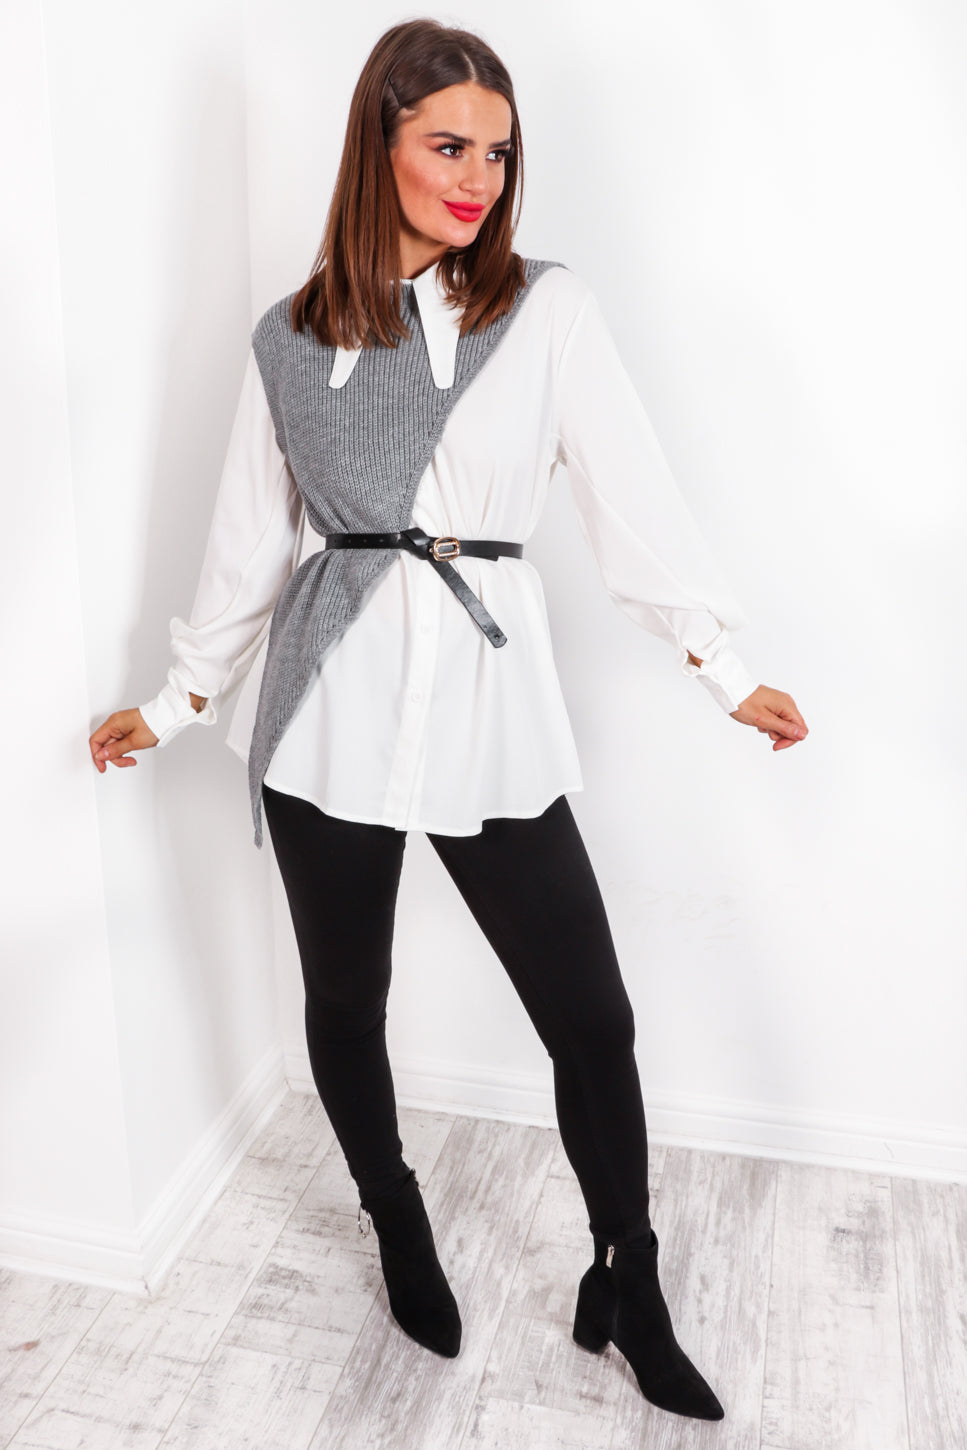 Feeling Shirt - Grey White Co-ord